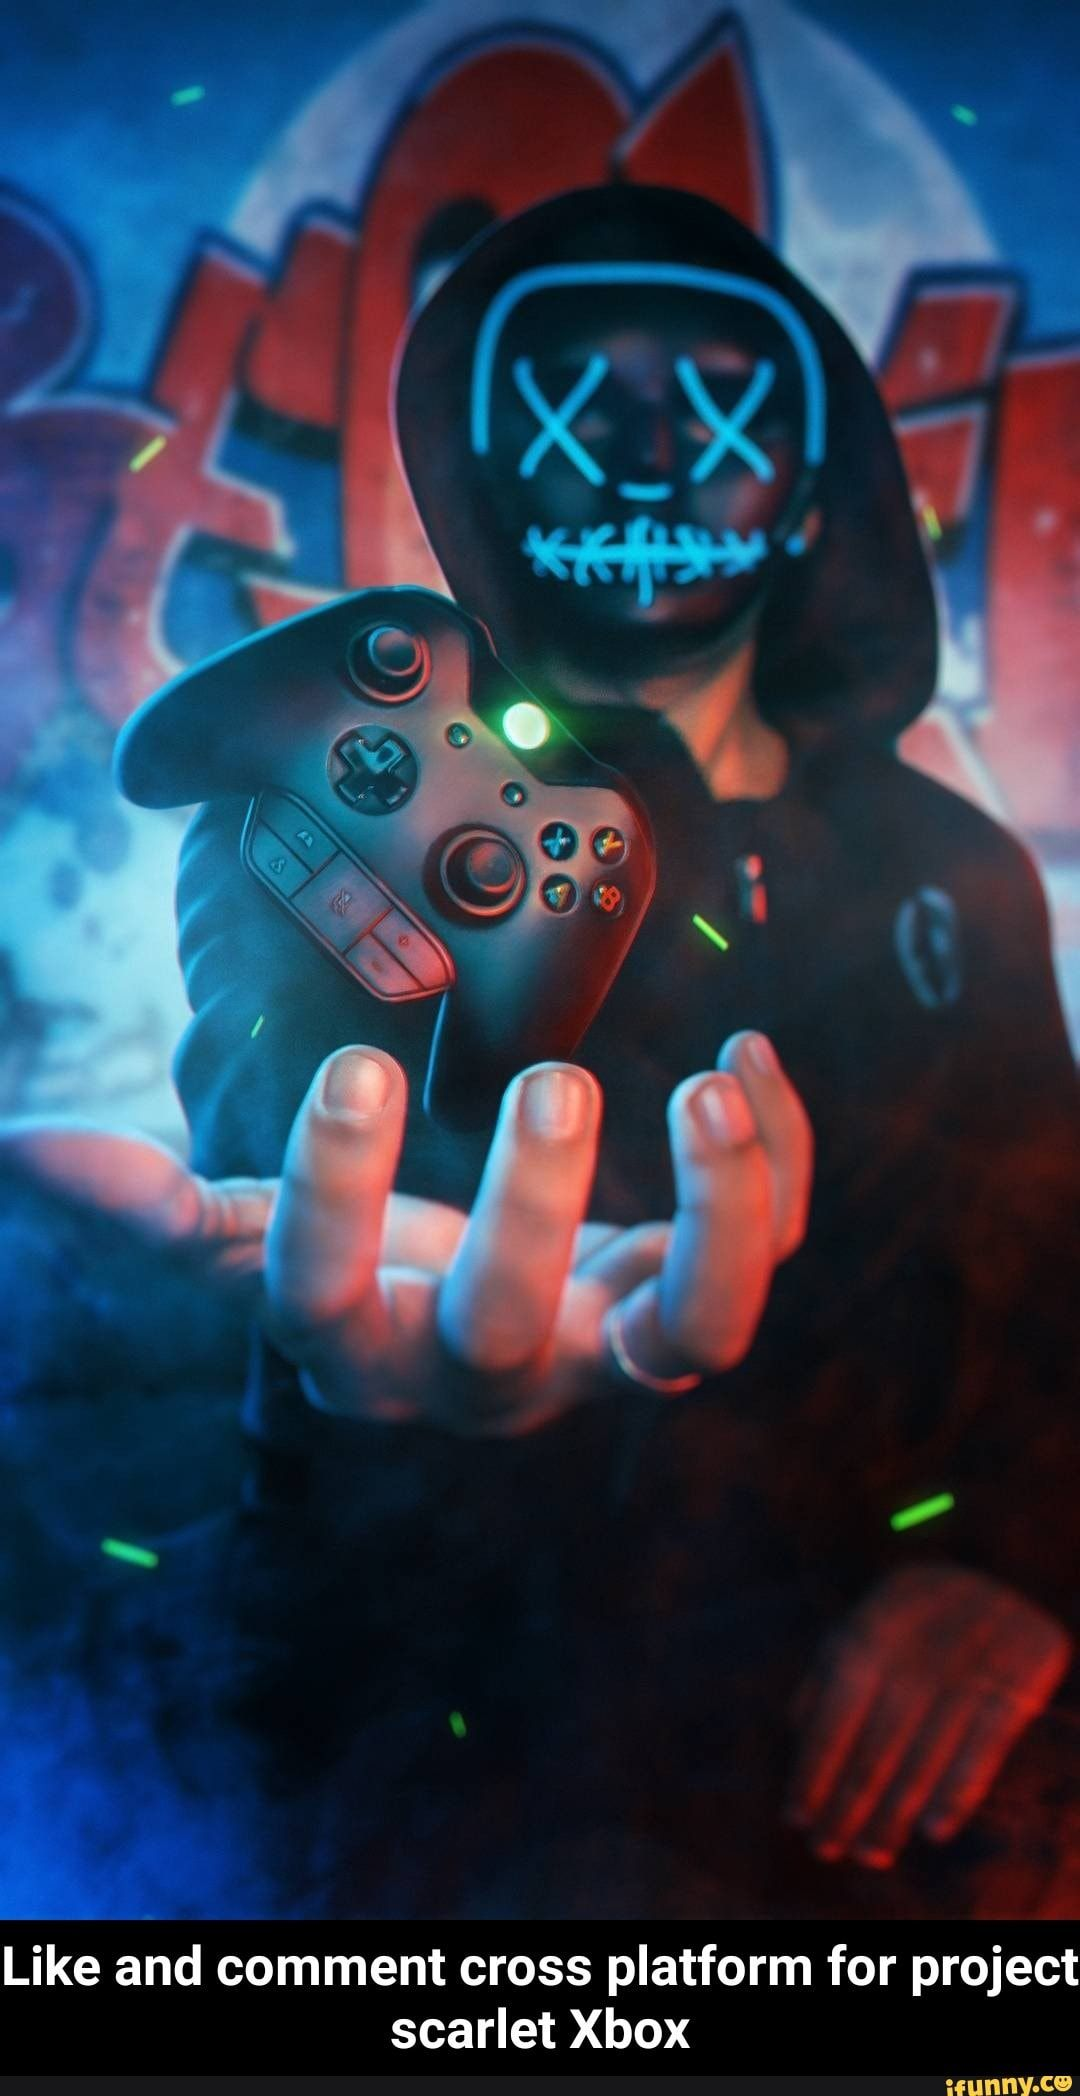 Like And Comment Cross Platform For Project Scarlet Xbox Like And Comment Cross Platform For Project Scarlet Xbox Ifunny Game Wallpaper Iphone Bape Wallpaper Iphone Gaming Wallpapers